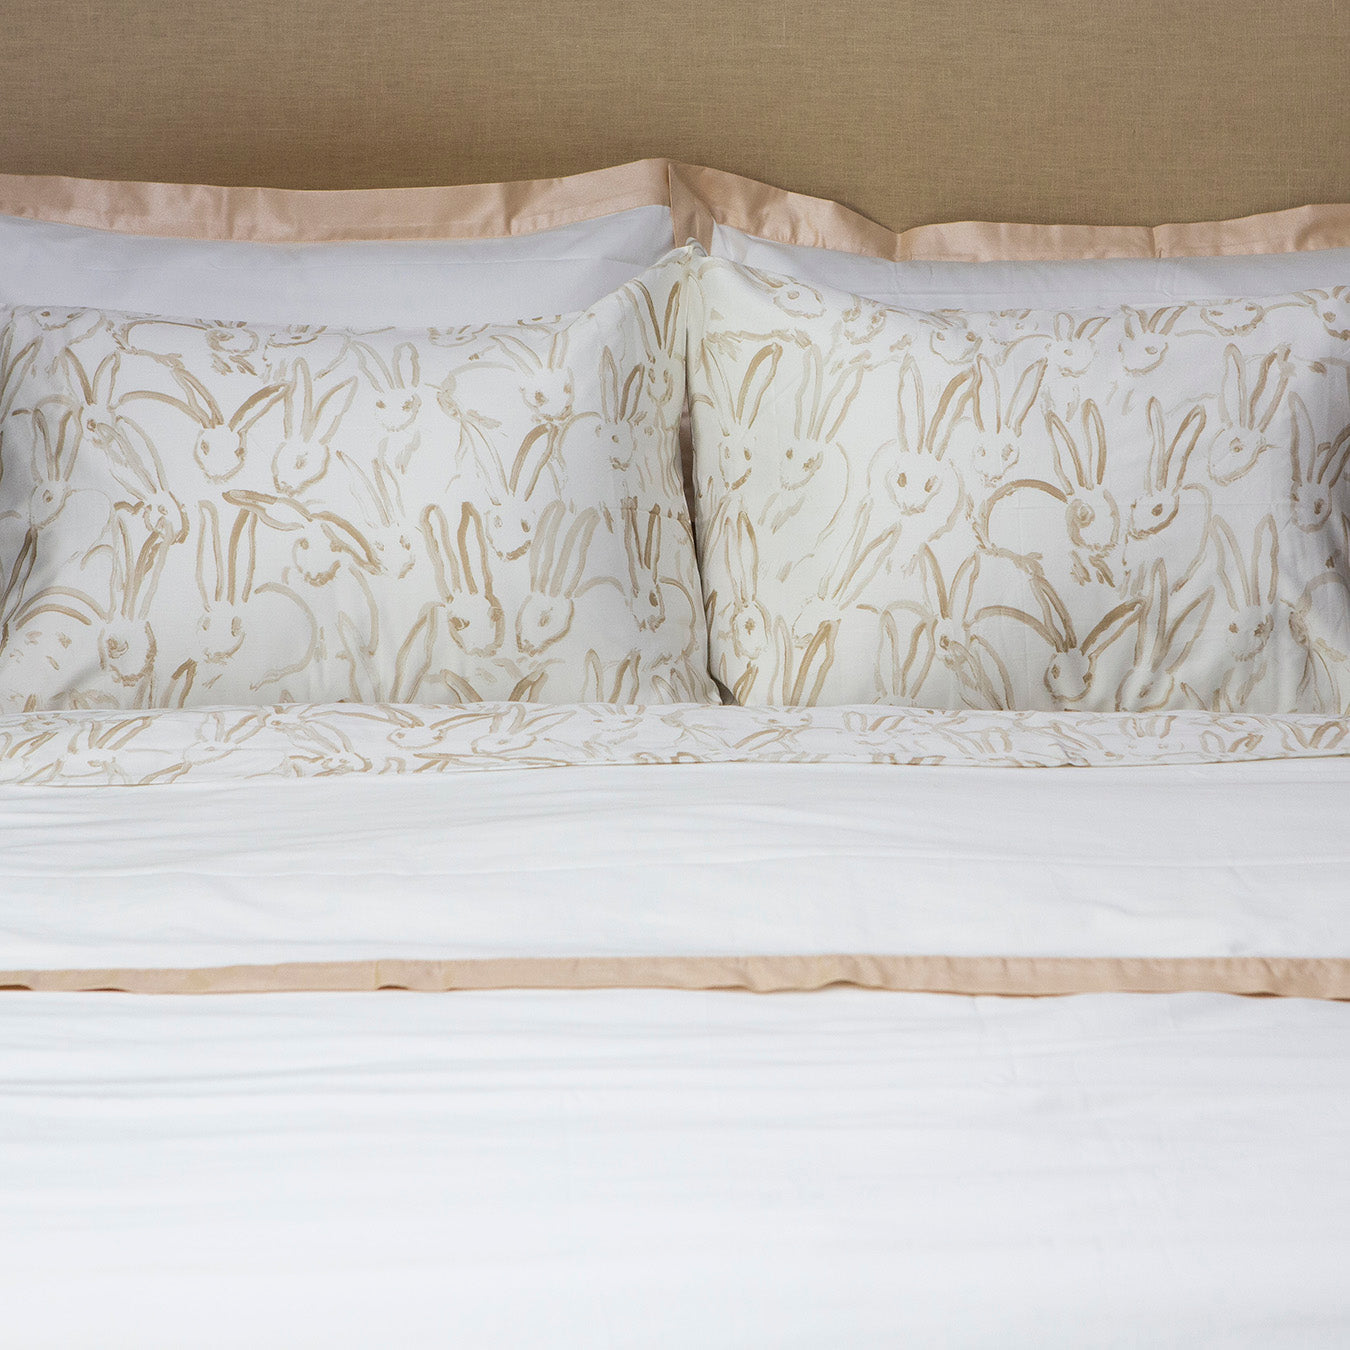 Rabbit Run Sheet Set in Gold